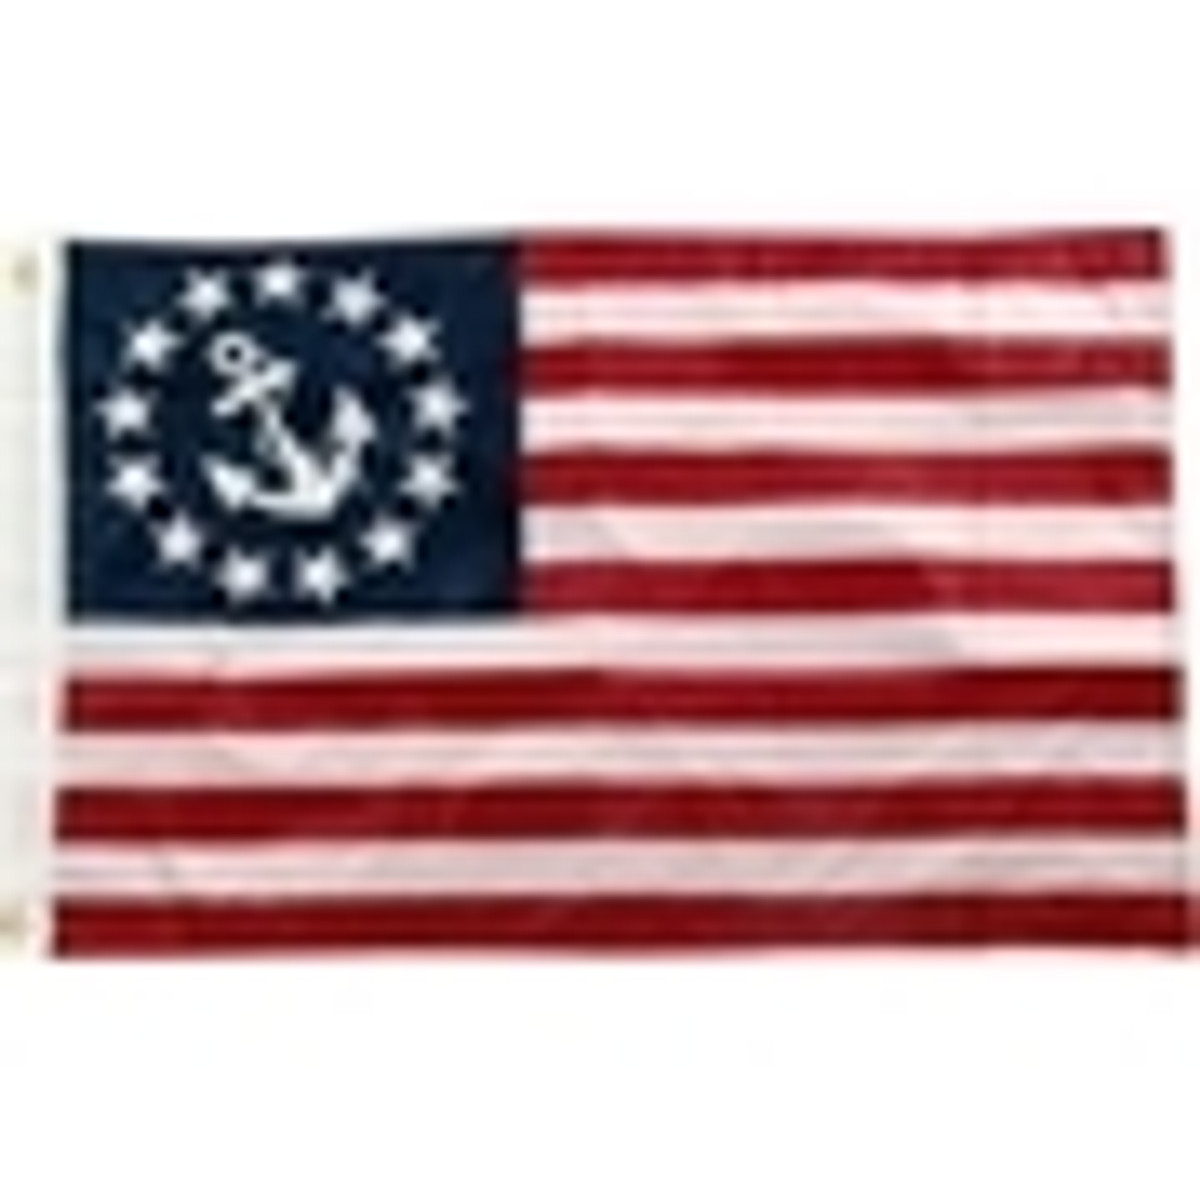 Small US Flags for Boats